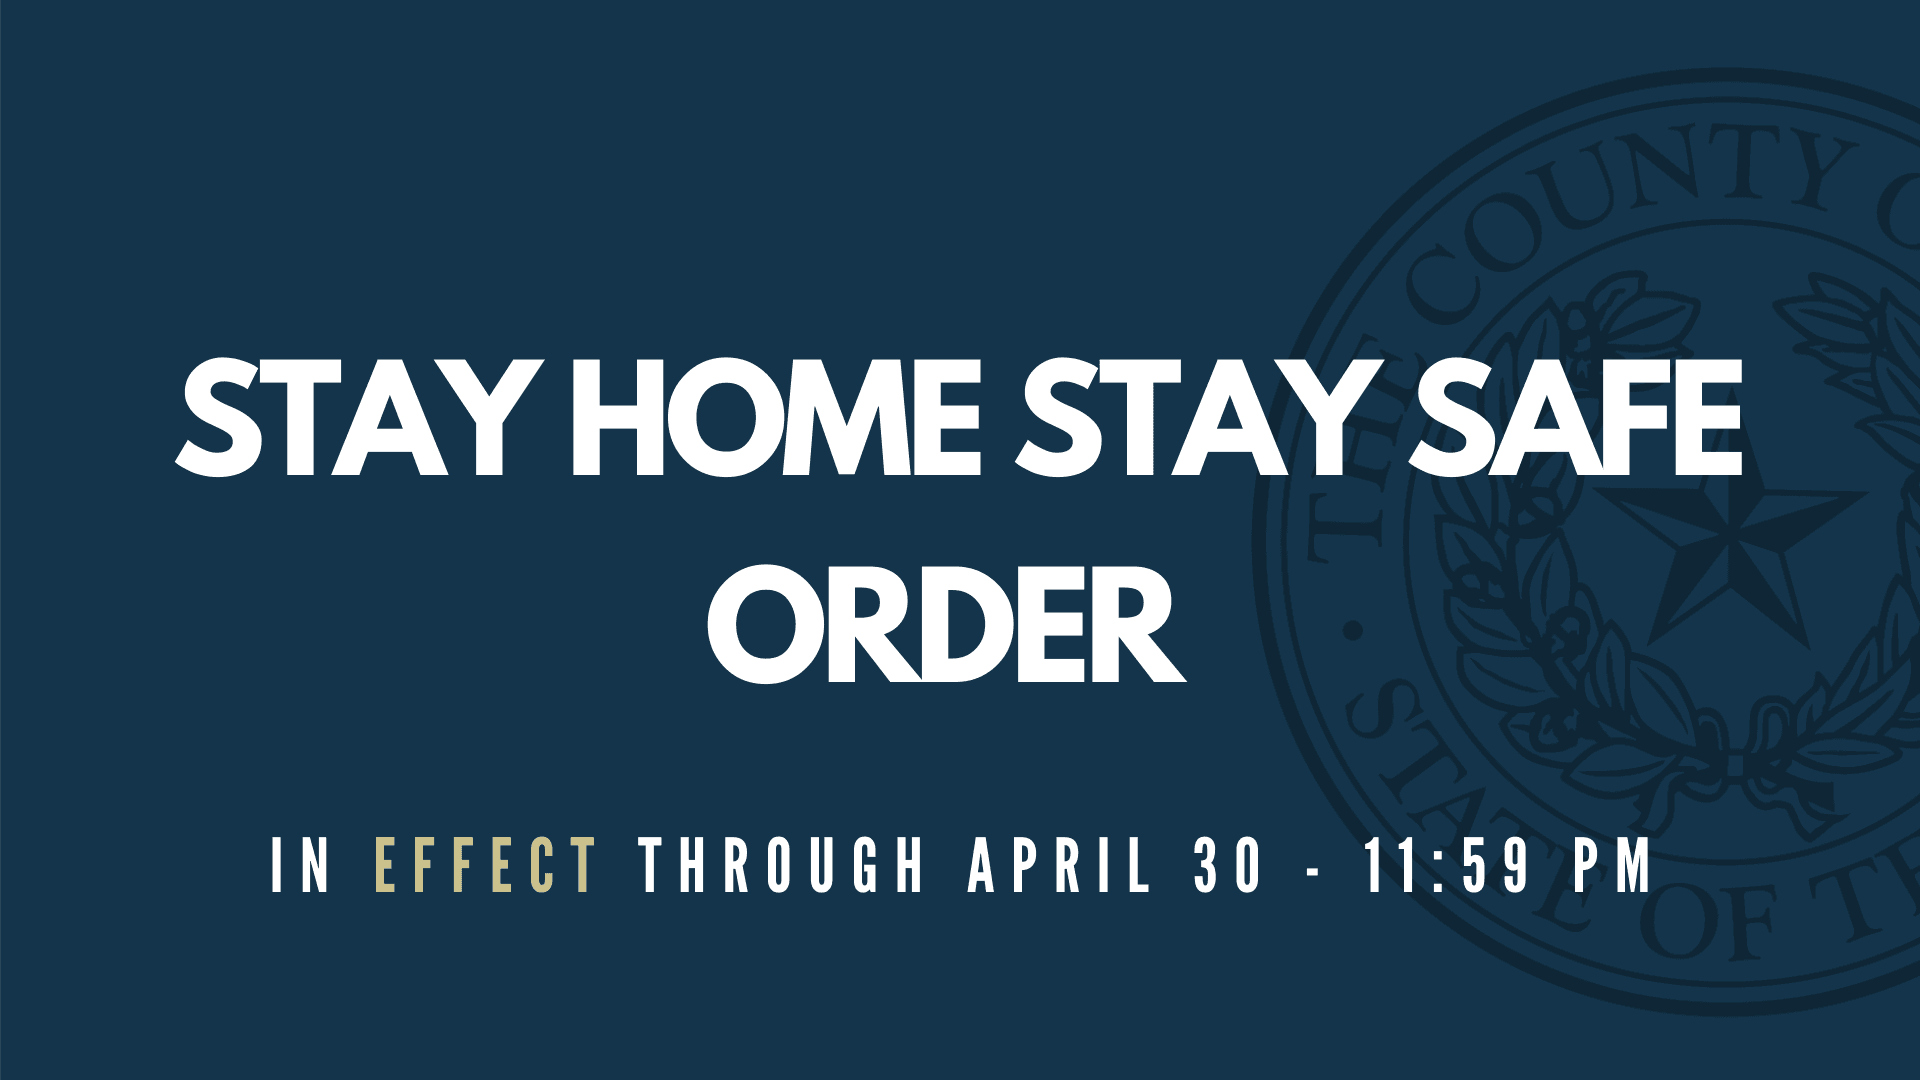 Stay Home Stay Safe Order 4.3.20